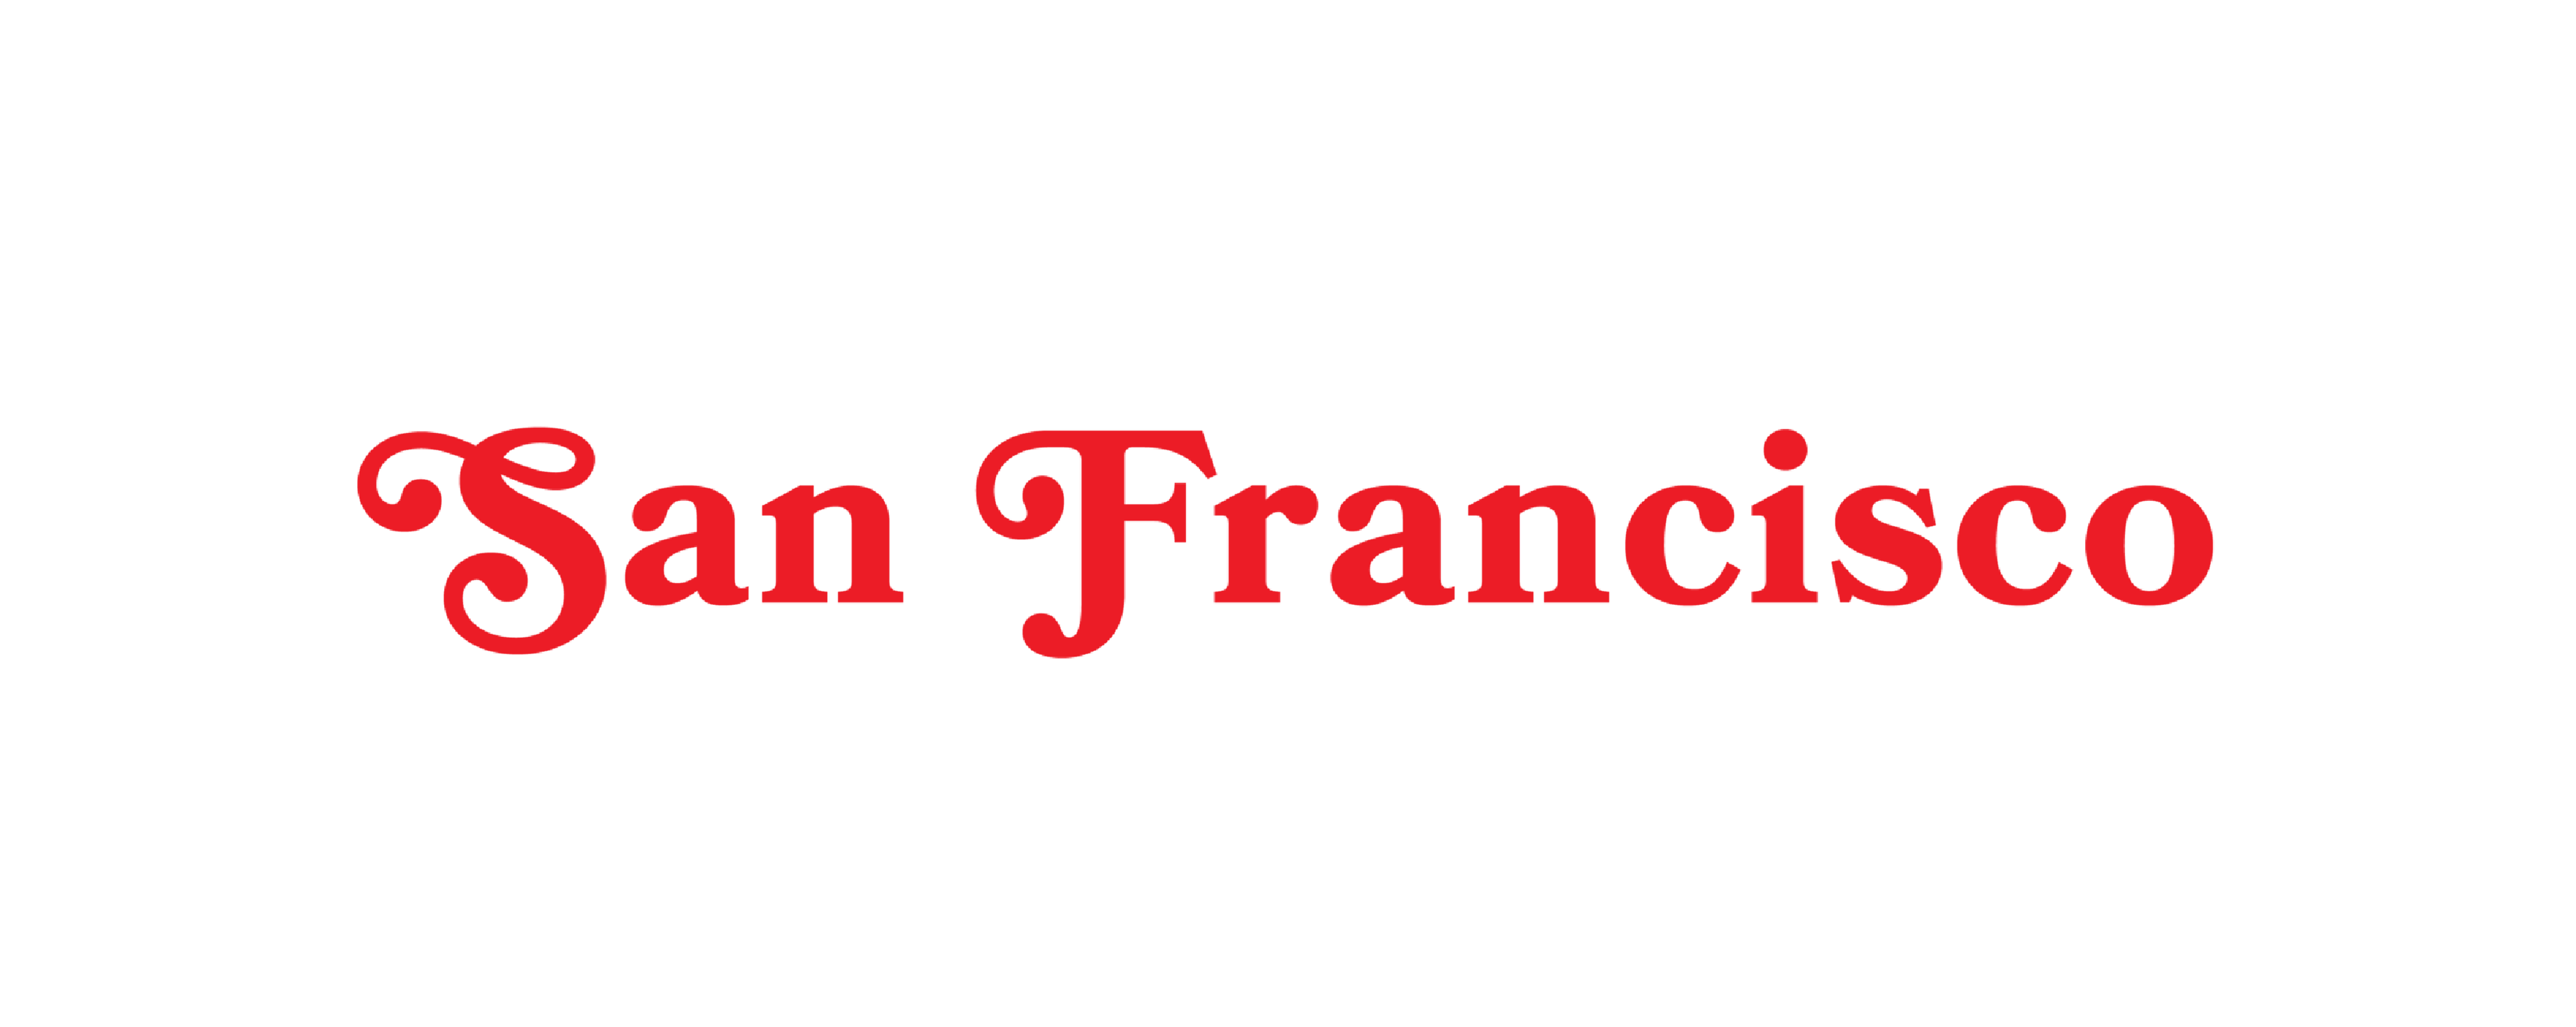 Tickets for Museum of Ice Cream San Francisco in San Francisco from MOIC